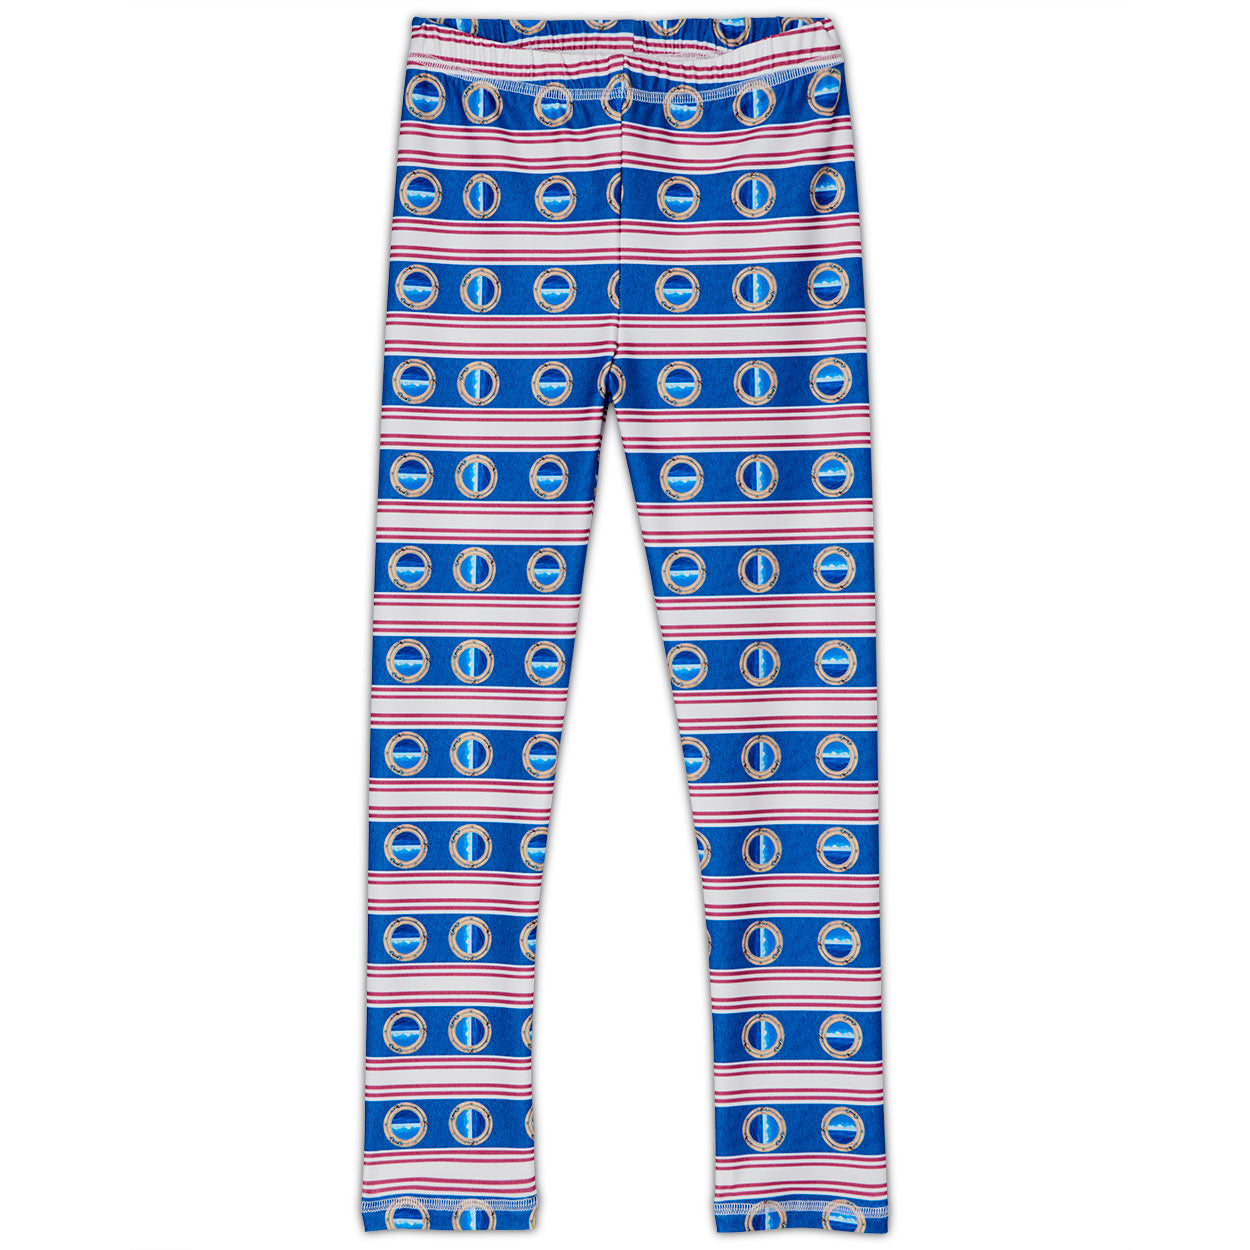 Mariner Hybrid Leggings Upf50 Kids Boys Girls Size 2 6 Red White Blue Stripes Denim Unisex Modern Mariner Sunpoplife